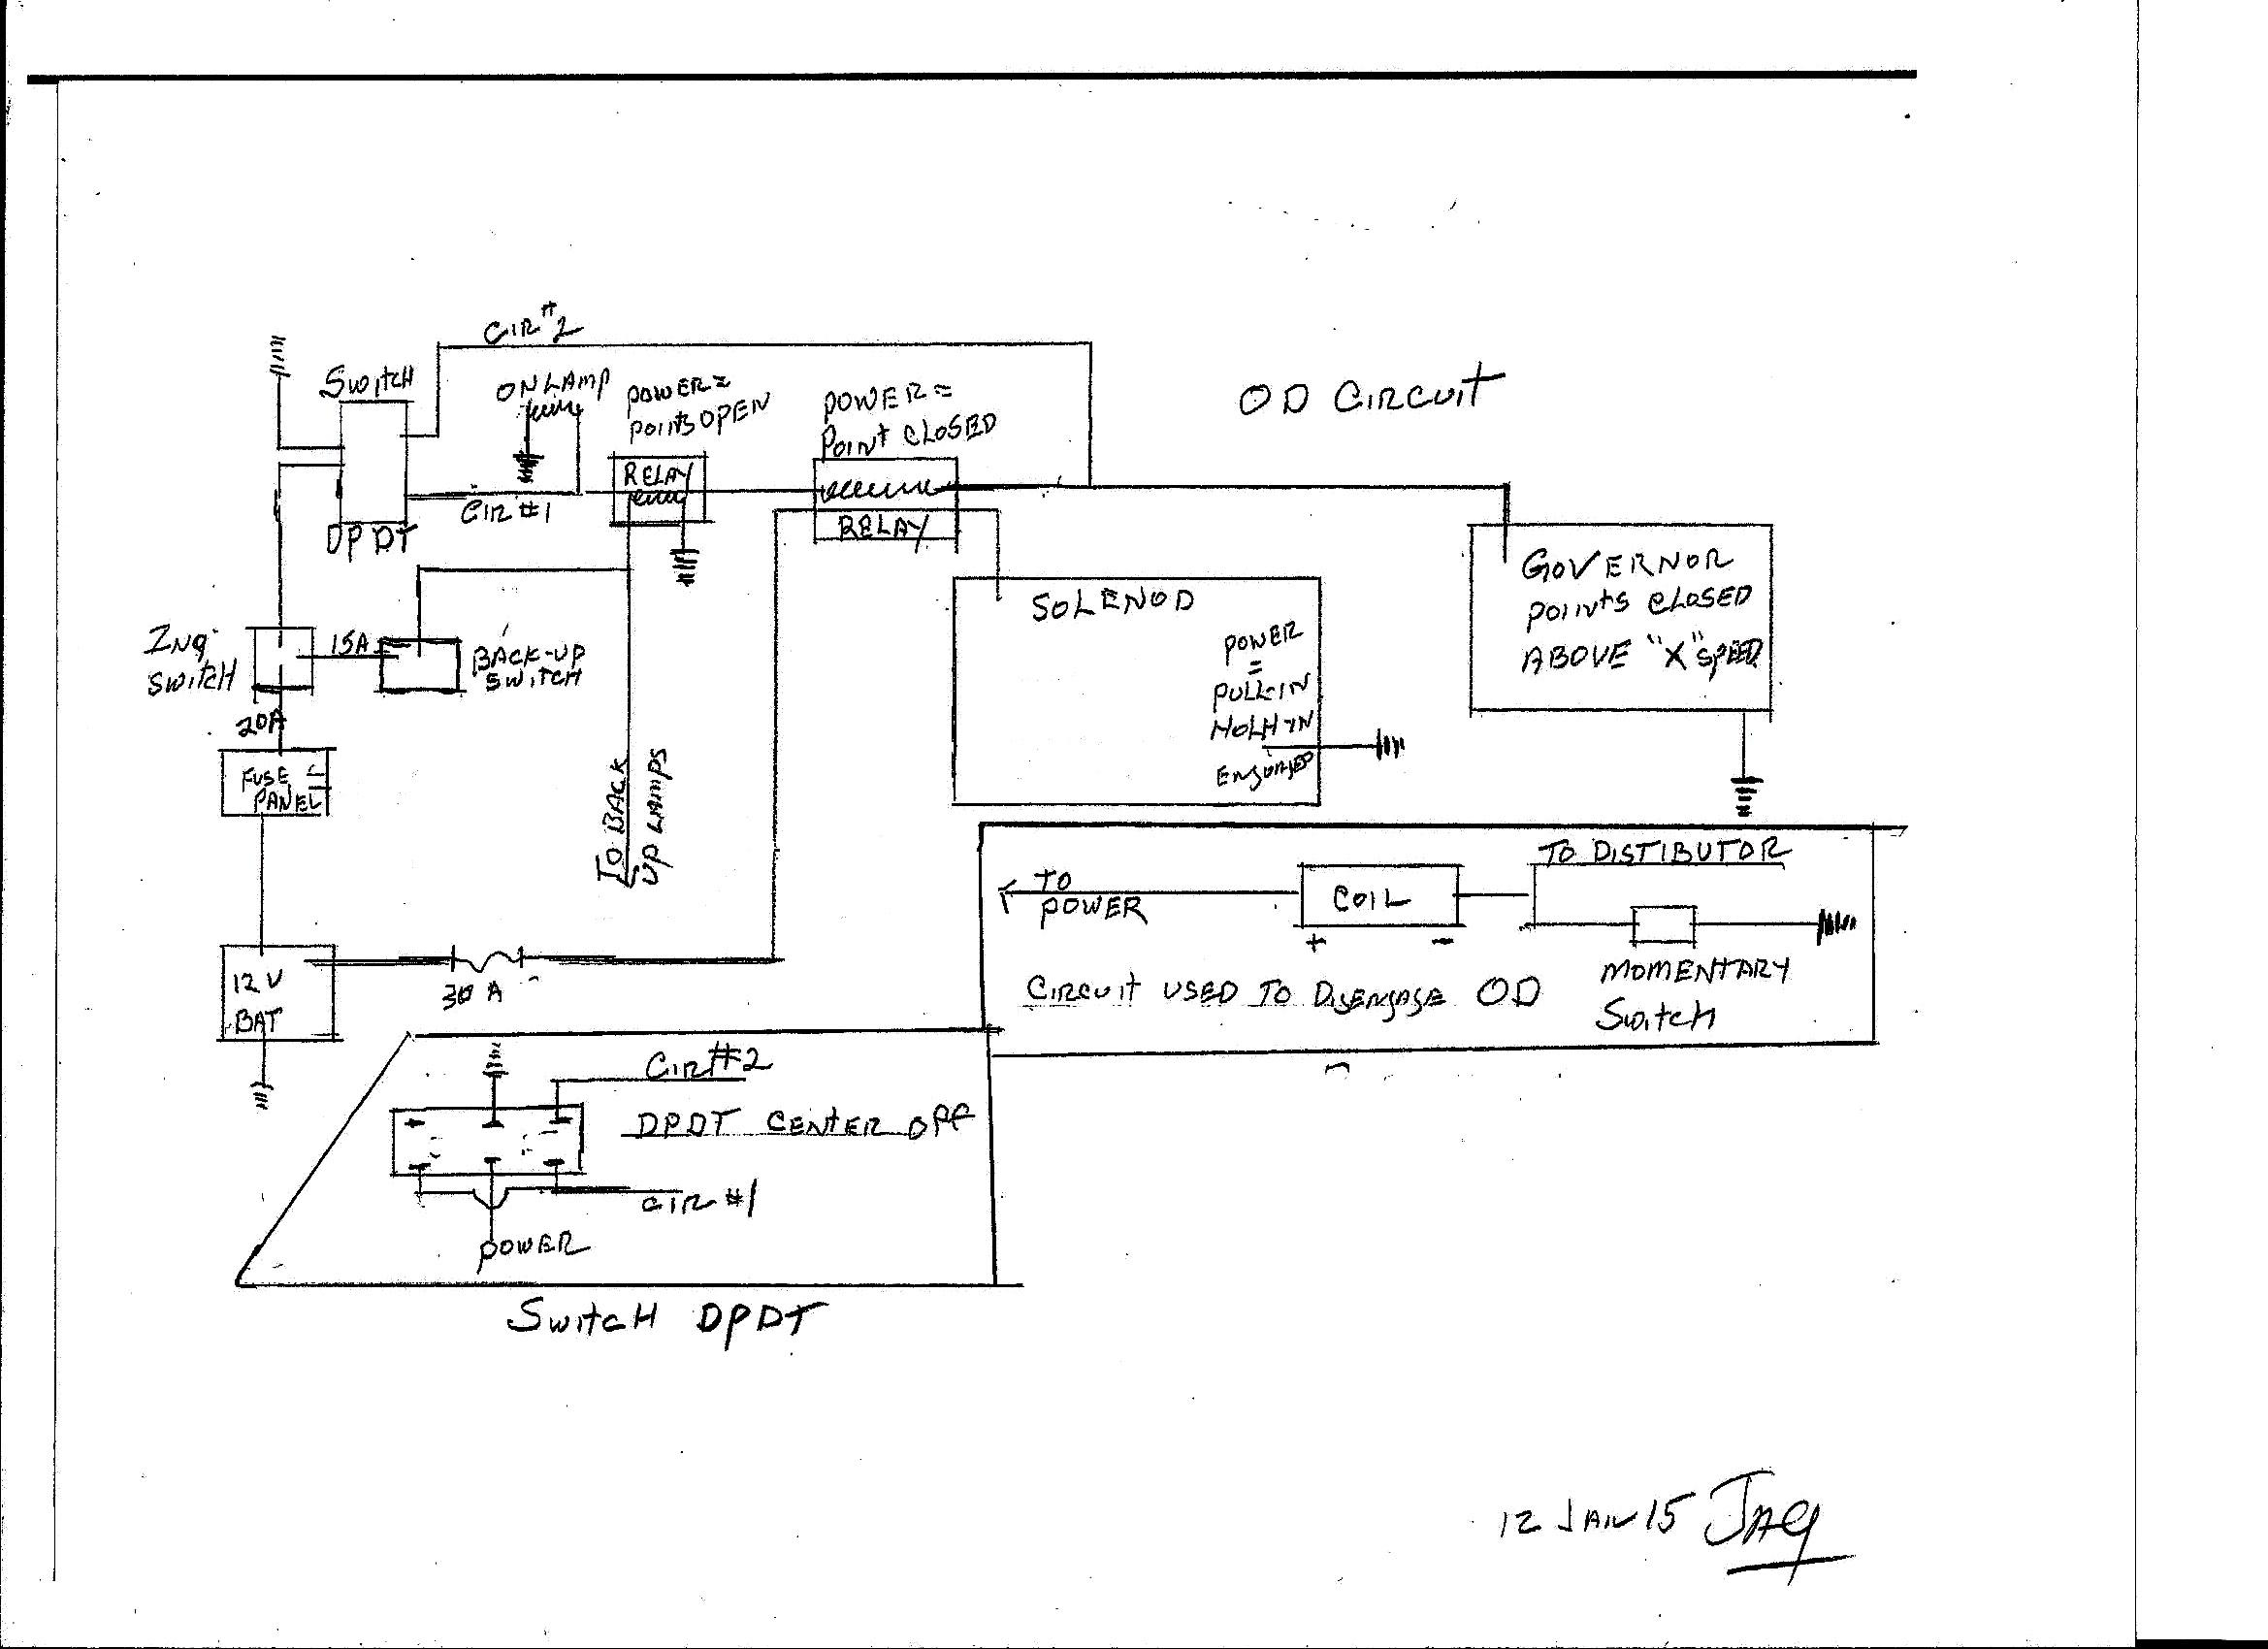 Wiring Diagrams In Addition Borg Warner Overdrive Transmission ... on borg warner overdrive relay, borg warner overdrive ford, 1965 ford three speed transmission diagram, borg warner 3 speed overdrive, borg warner overdrive transmission, borg warner overdrive manual, borg warner overdrive unit, borg warner clutch diagram, borg warner overdrive solenoid, saginaw overdrive wiring diagram, borg warner 3 speed transmission identification,